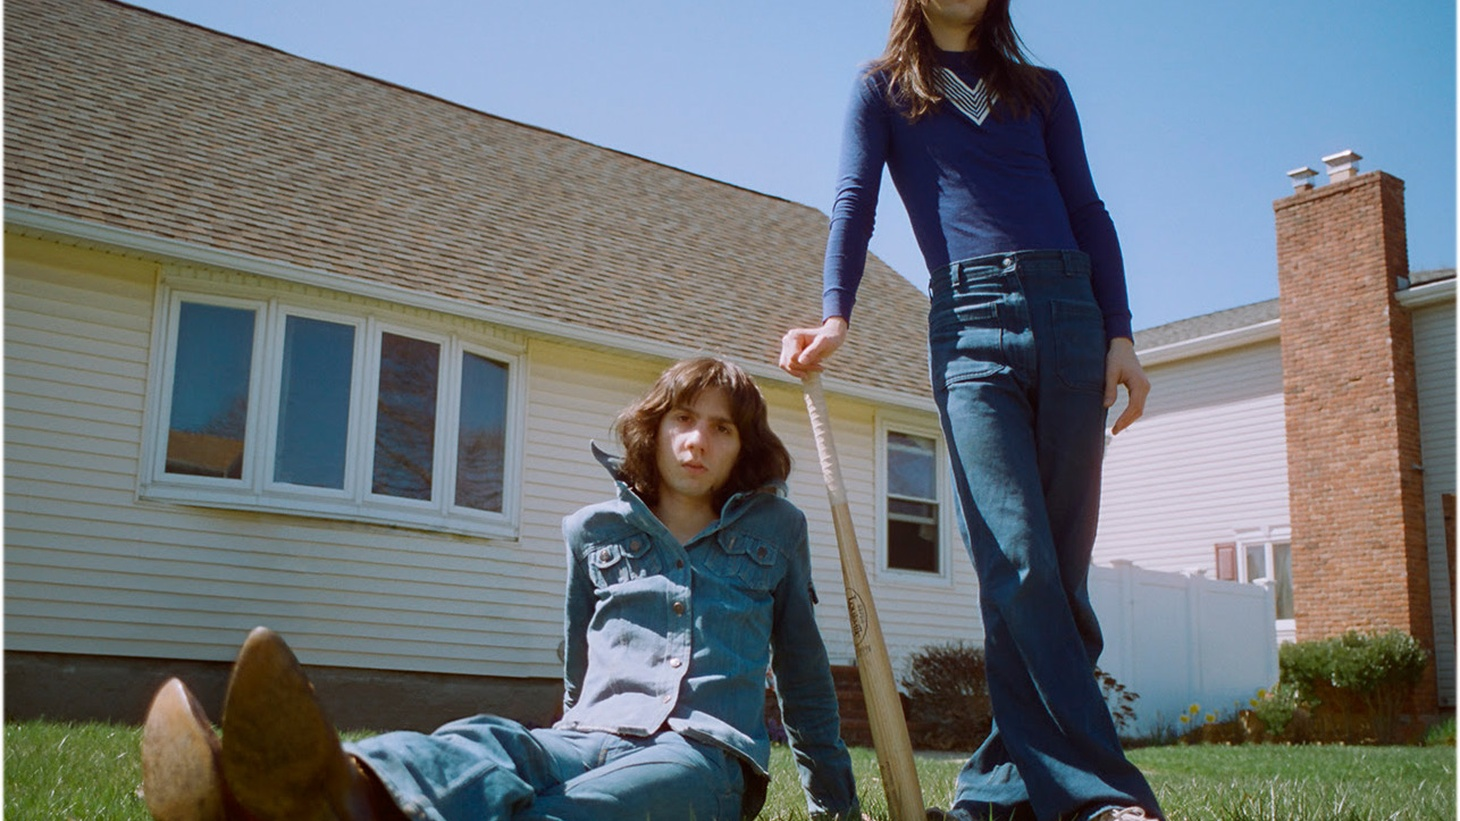 The second album by brothers Brian and Michael D'Addario, aka The Lemon Twigs, is a song cycle that tells the story of Shane; a chimpanzee raised as a boy, who comes to terms with the obstacles in life.